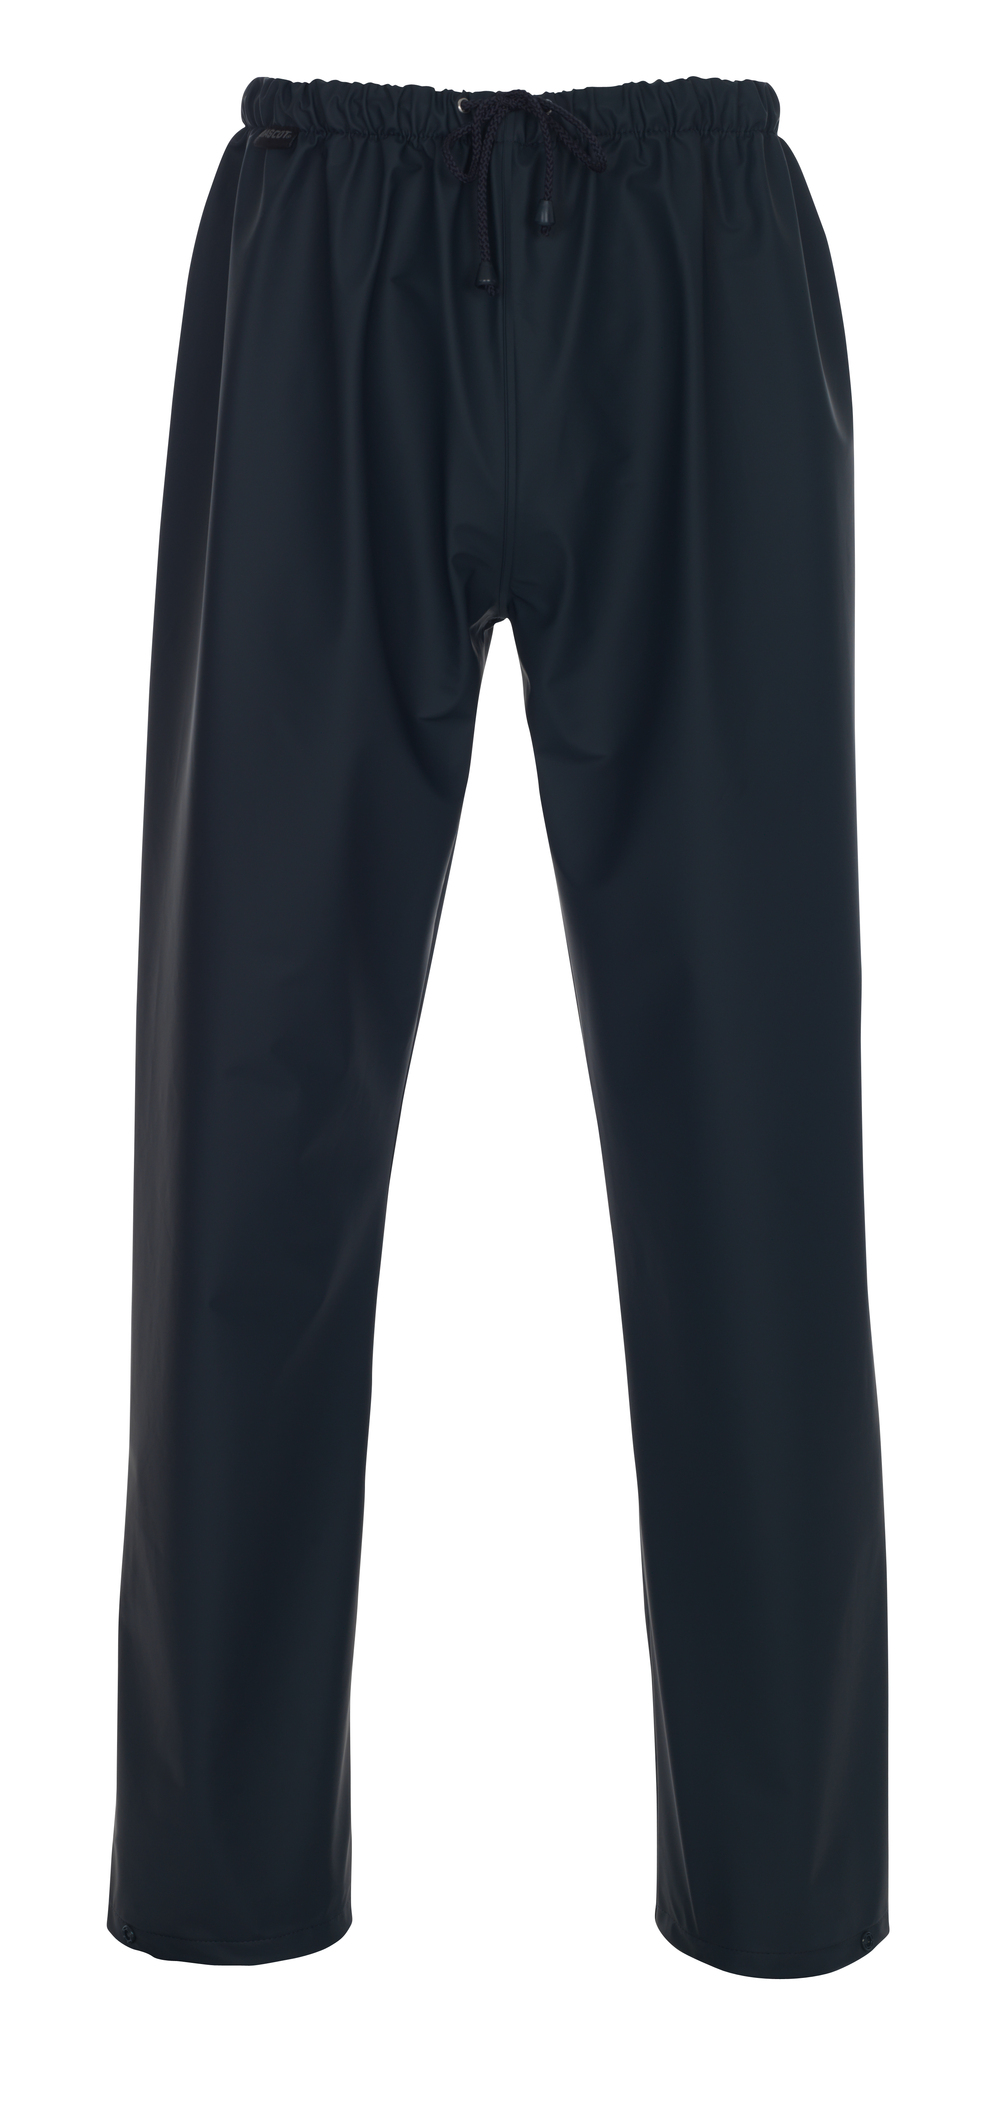 07062-028-01 Rain Trousers - navy